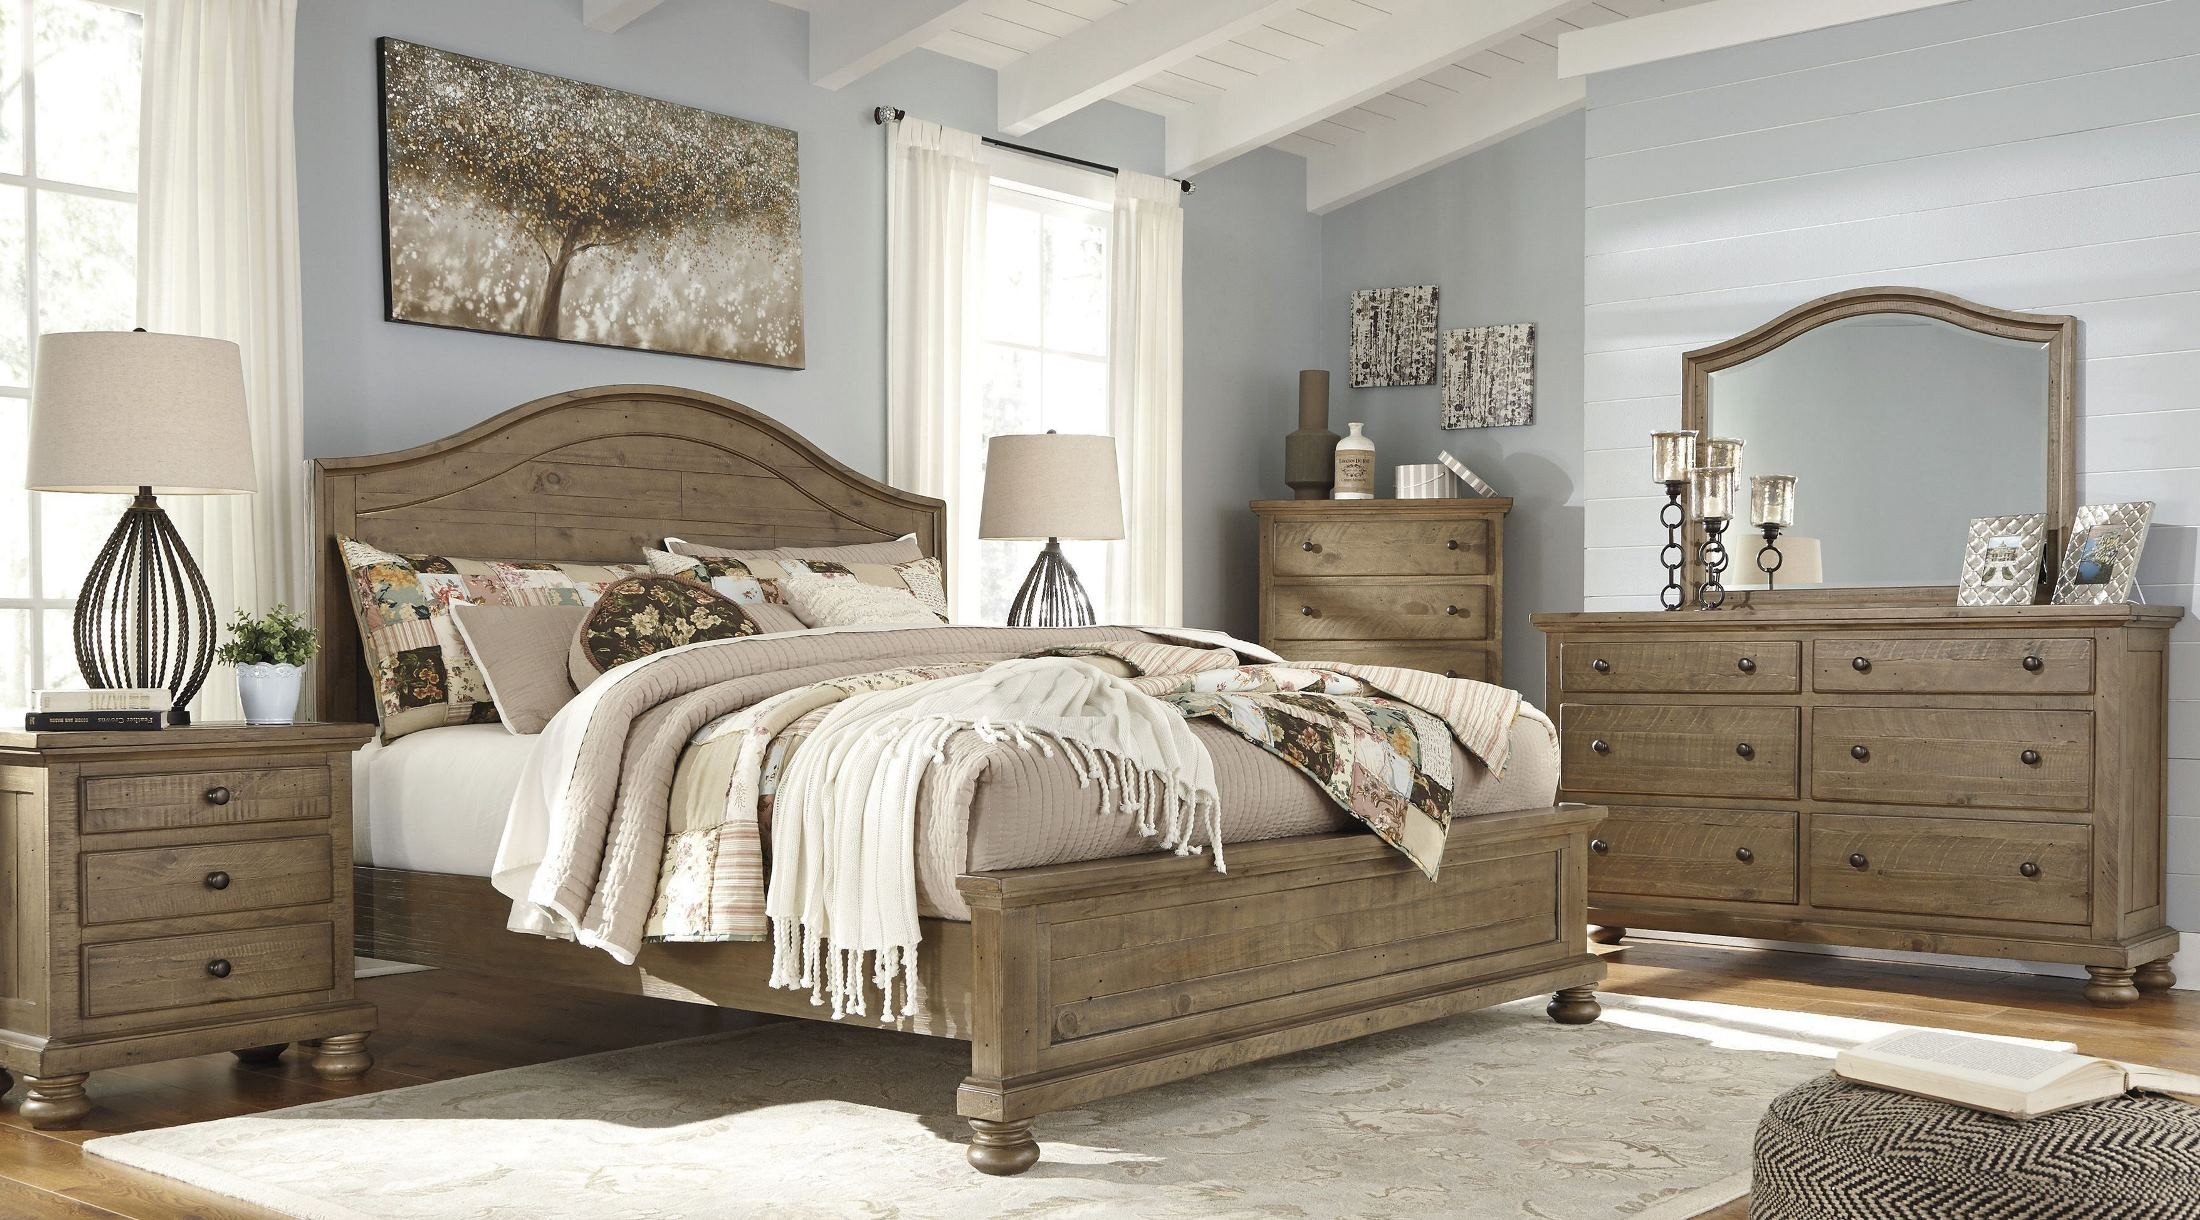 Trishley light brown panel bedroom set b659 57 54 96 ashley for Bedroom furniture